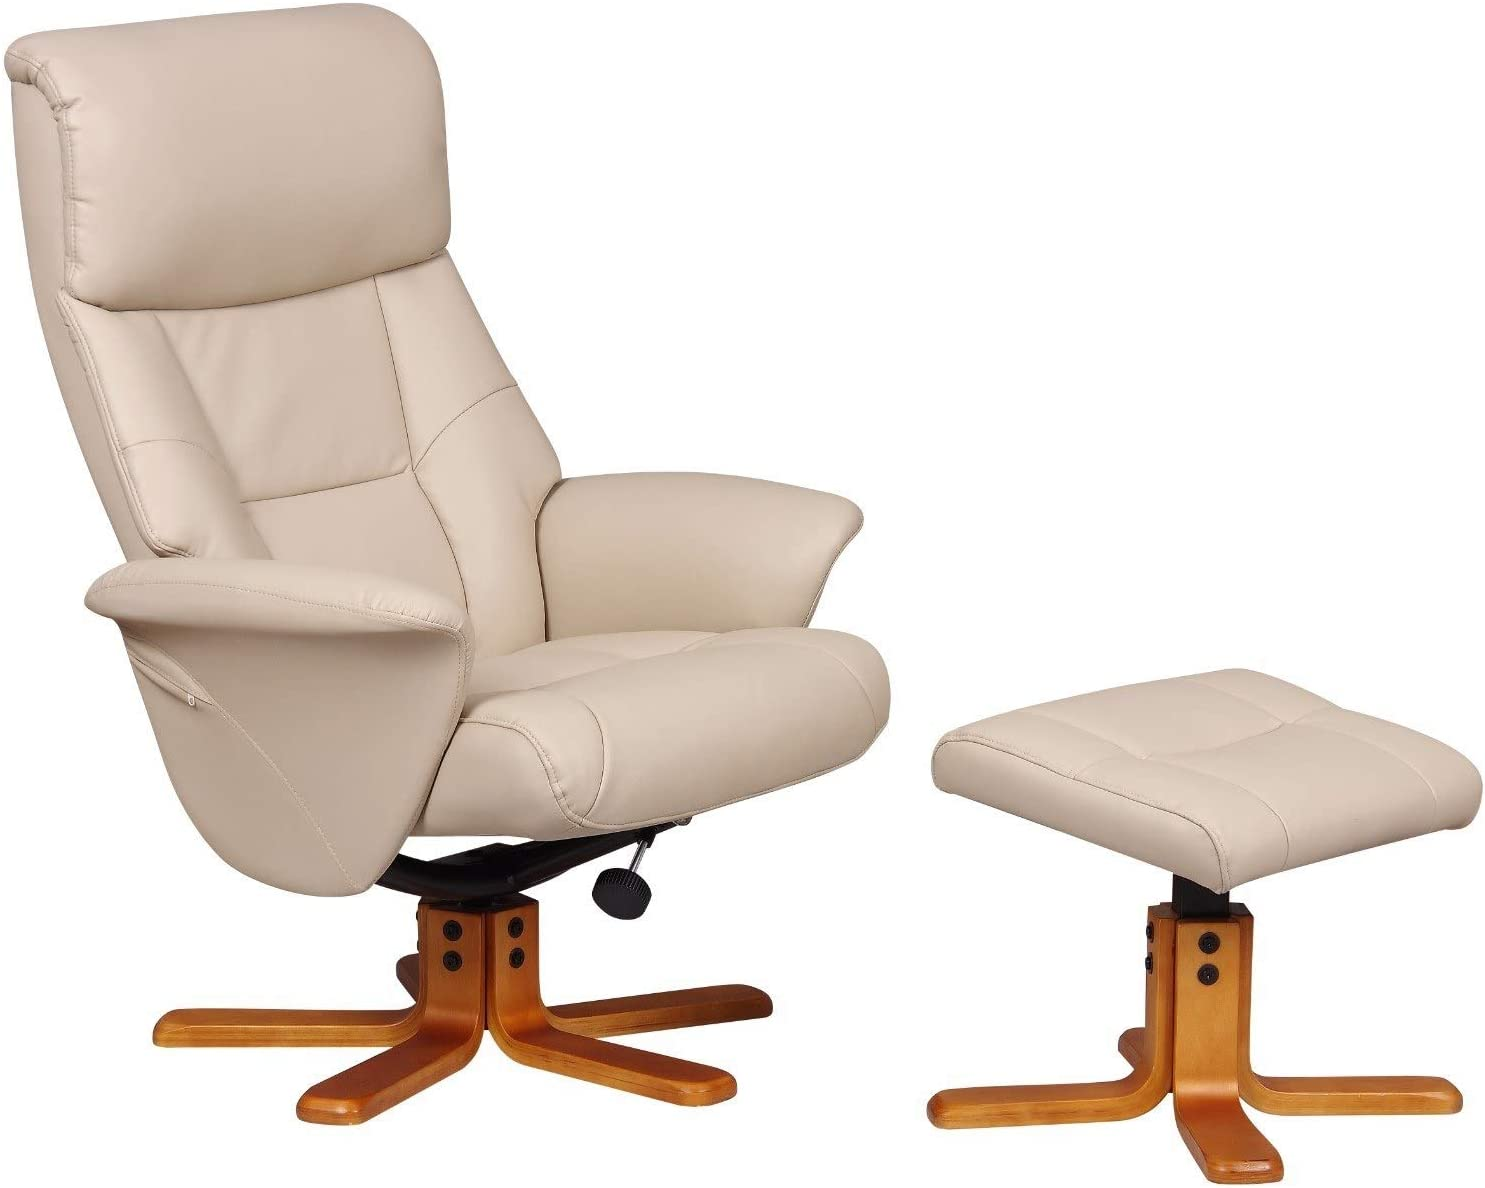 Oak City Marseille FabricFaux Leather Swivel Recliner Chair And Foot Stool Café LatteCherry